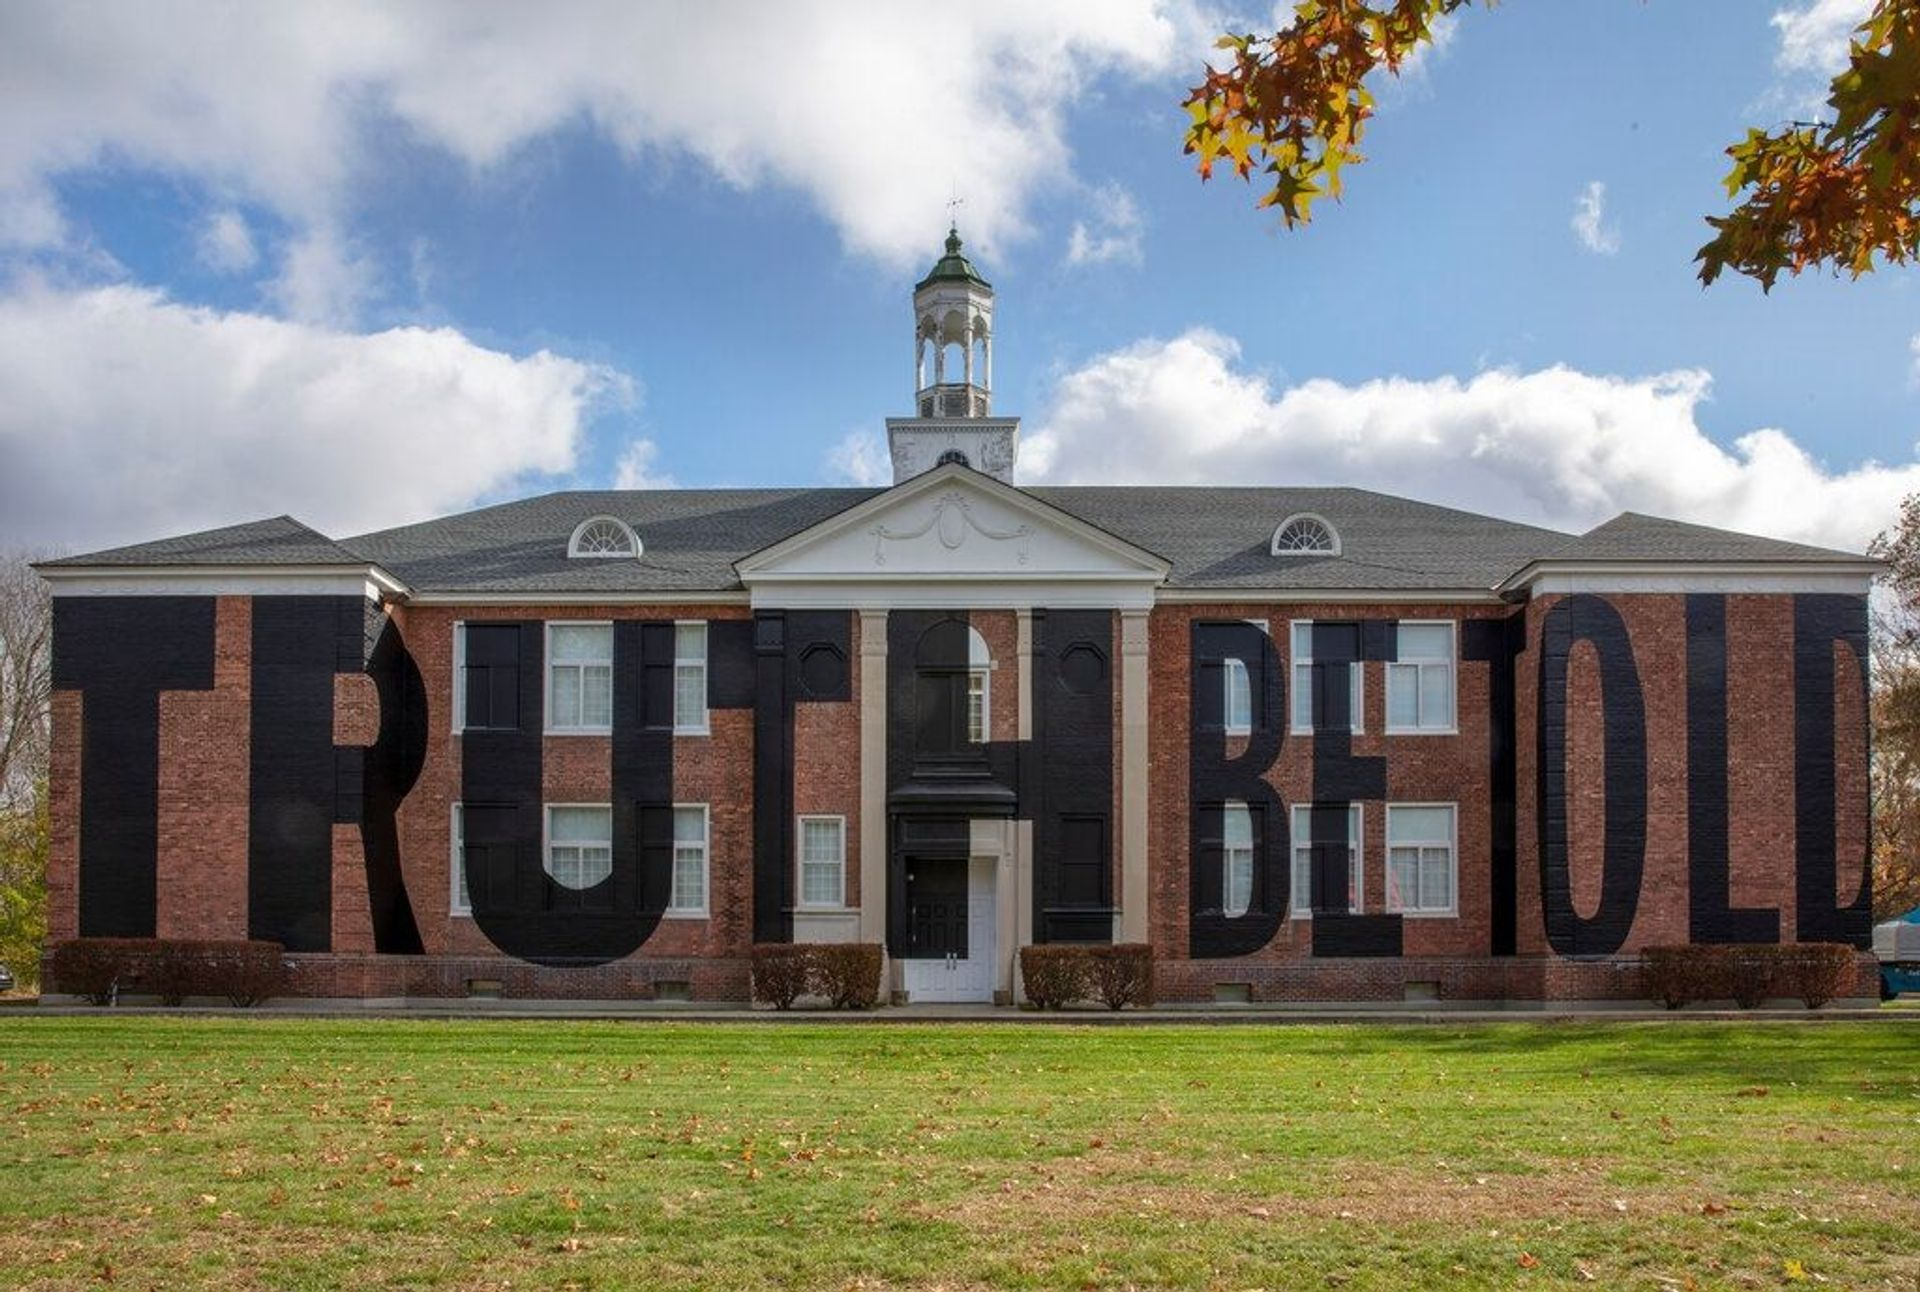 Nick Cave's Truth Be Told installed on the façade of The School in Kinderhook, New York Photo: Courtesy of Nick Cave and Jack Shainman Gallery